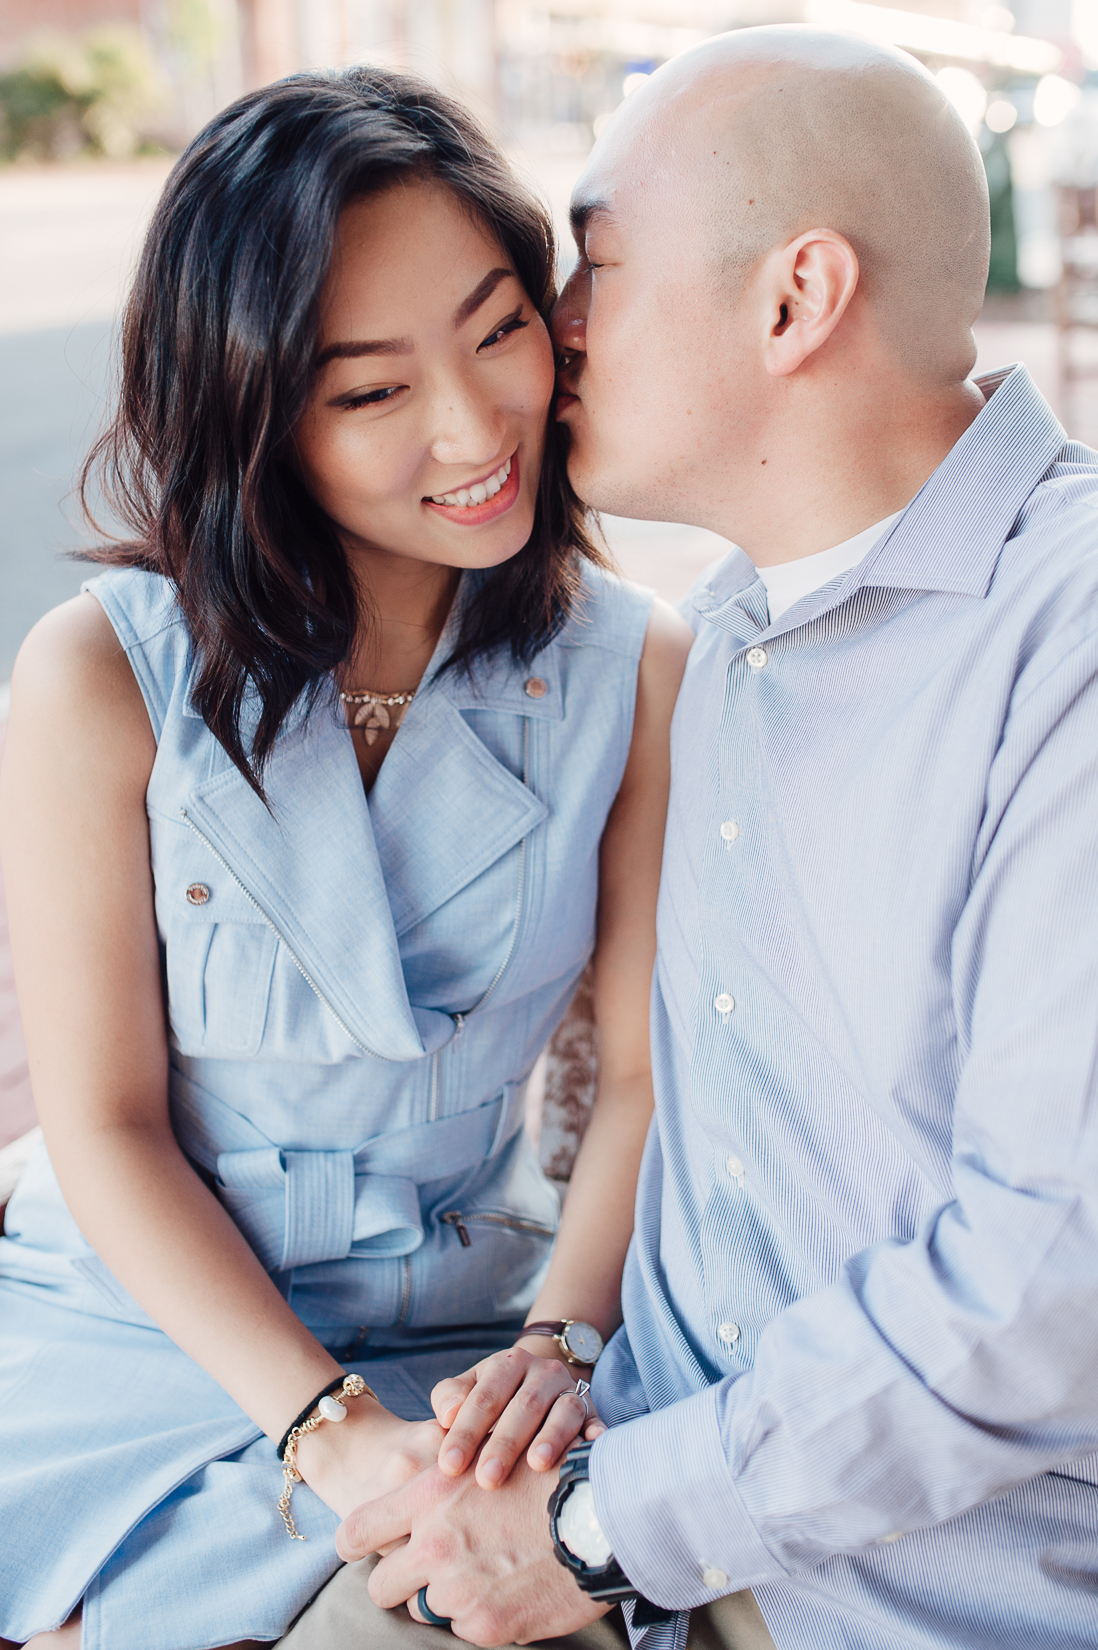 engagement_downtown_fredericksburg_virginiaweddingphotographer_youseephotography_HelenPaul (17).jpg